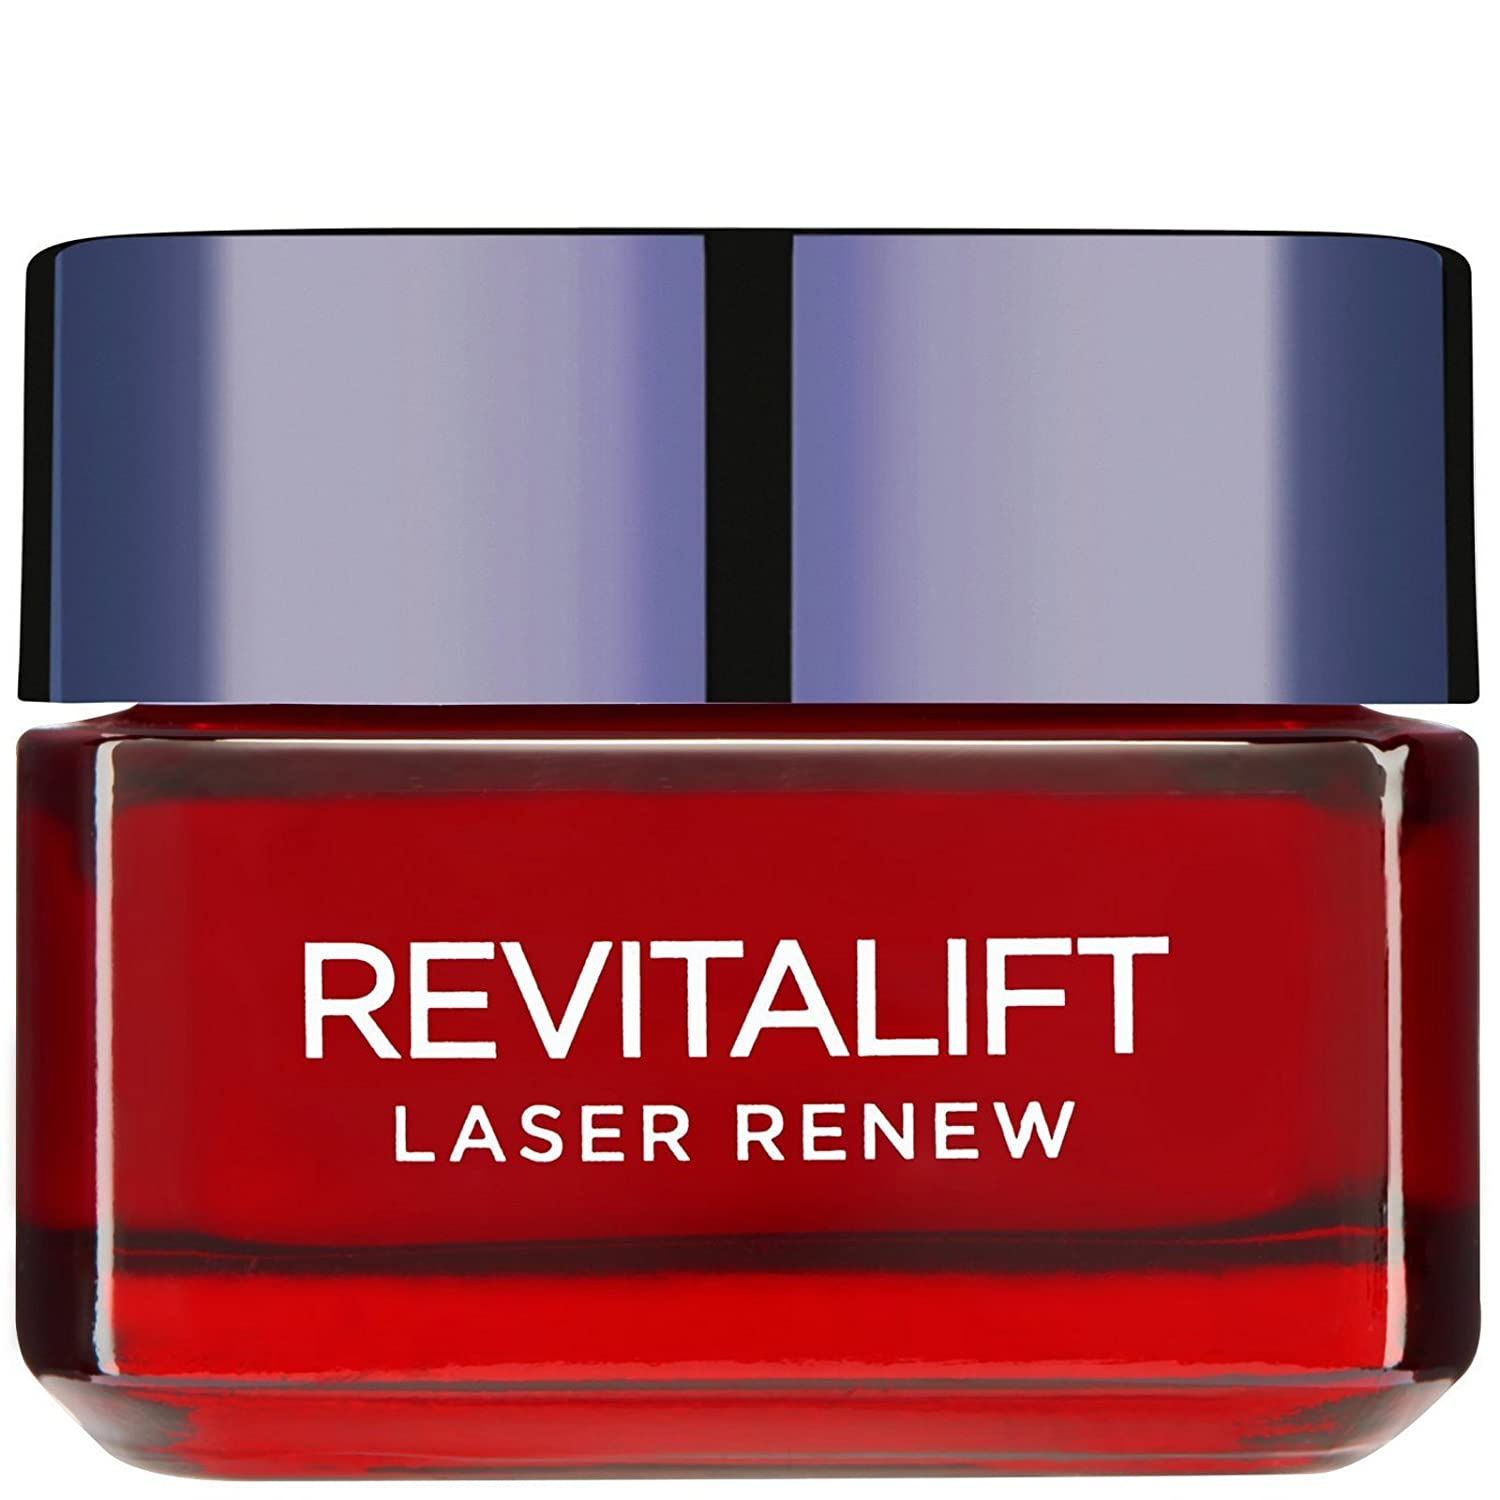 Revitalift Laser Anti-Dark Spot and Anti-Aging Treatment by L'Oréal